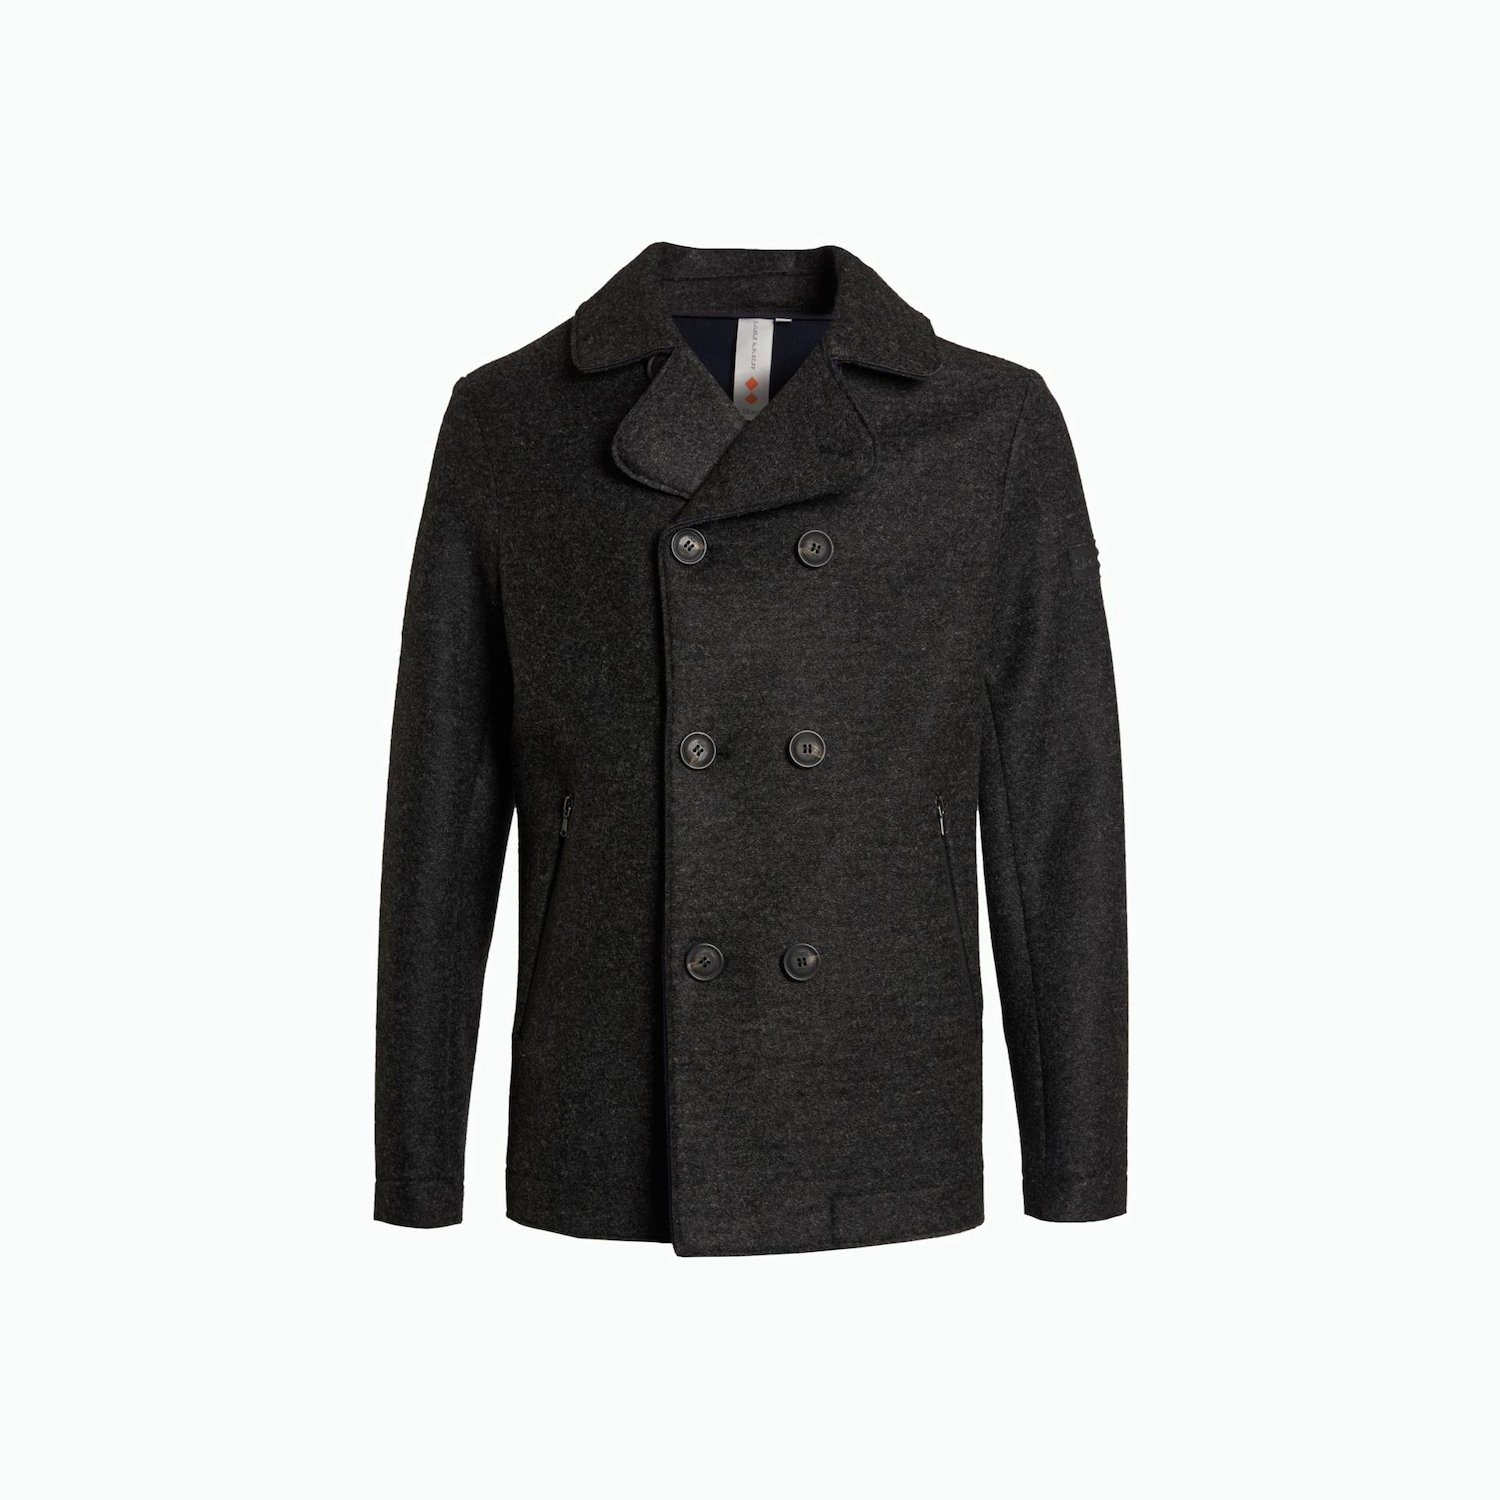 Stuart jacket | Men's - Anthracite